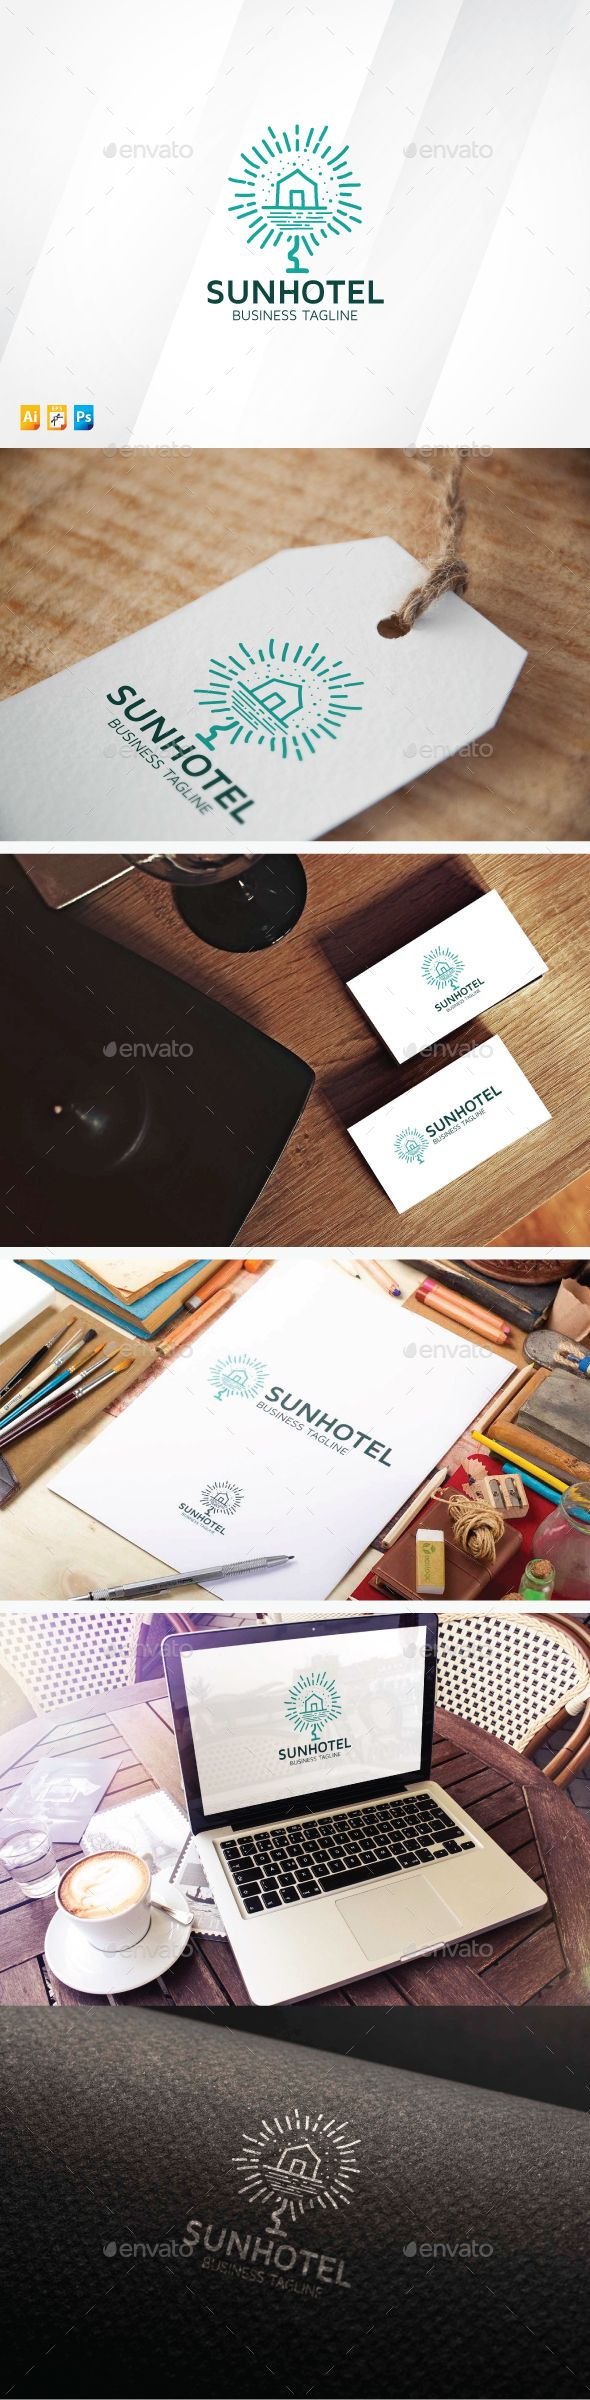 Sun Hotel Logo Design Template Vector #logotype Download it here: http://graphicriver.net/item/sun-hotel/13398177?s_rank=439?ref=nexion